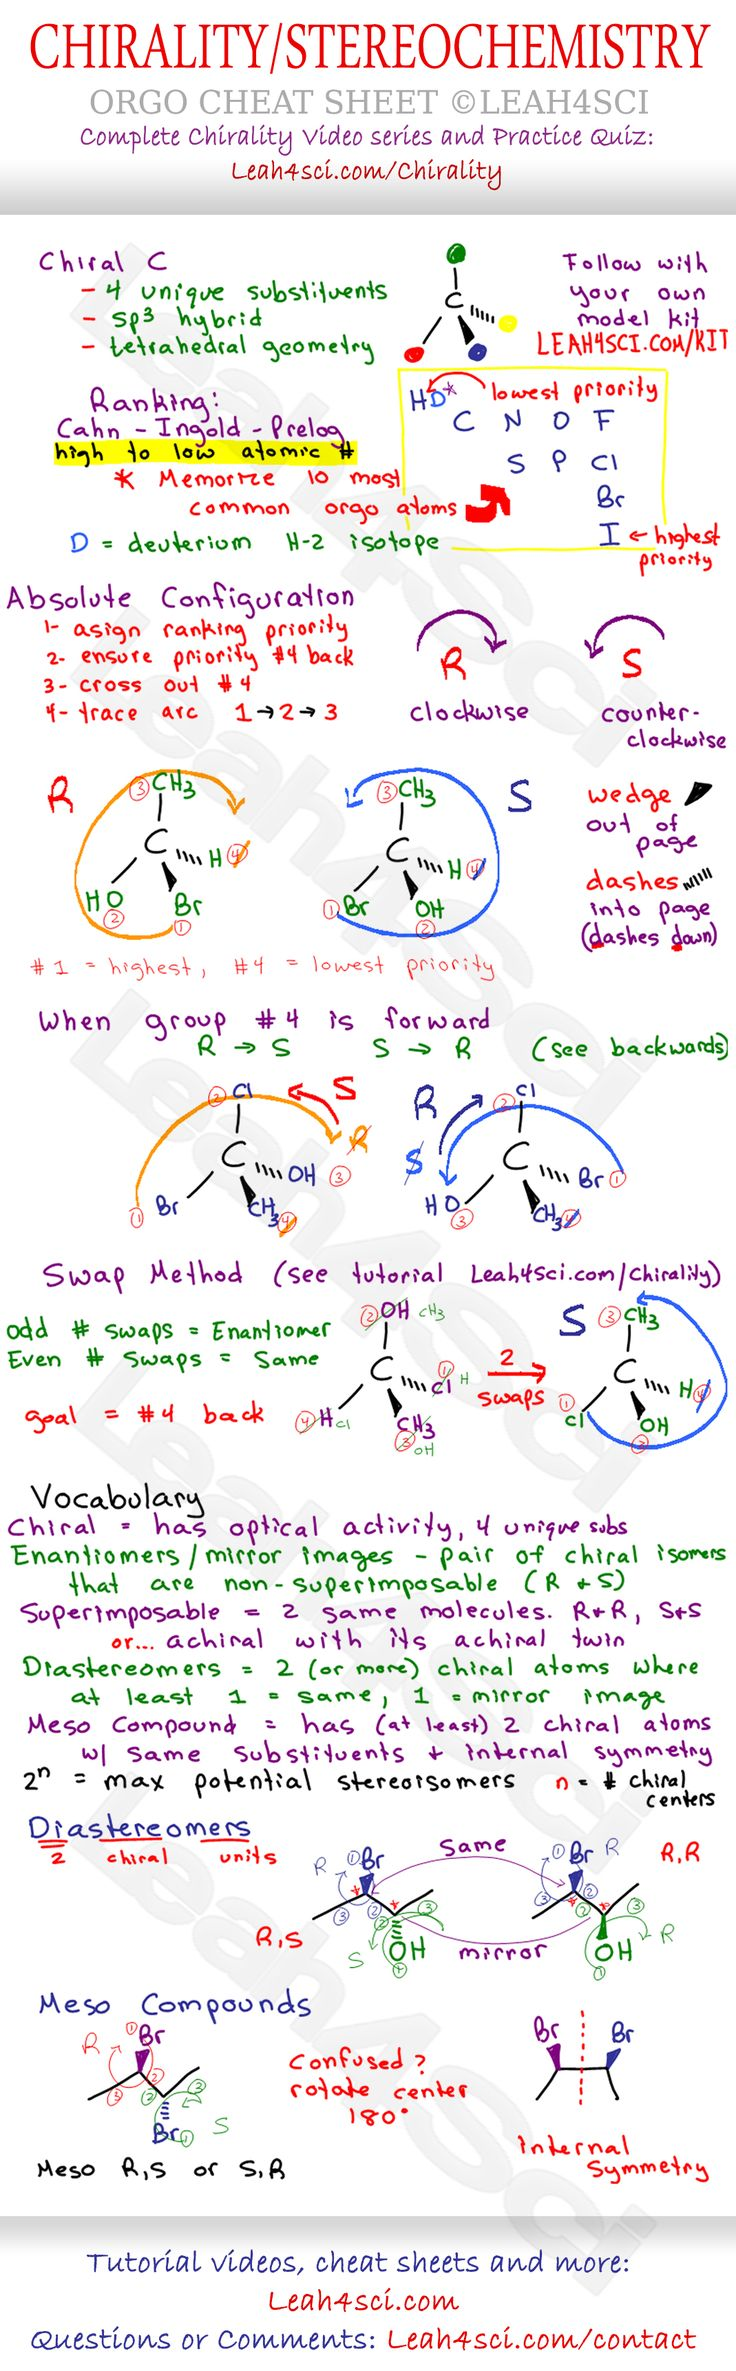 Chirality & Stereochemistry Cheat Sheet Study Guide - finding Chiral carbons, enantiomers, diastereomers, meso compounds, absolute R/S configuration, Cahn-Ingold-Prelog ranking and more